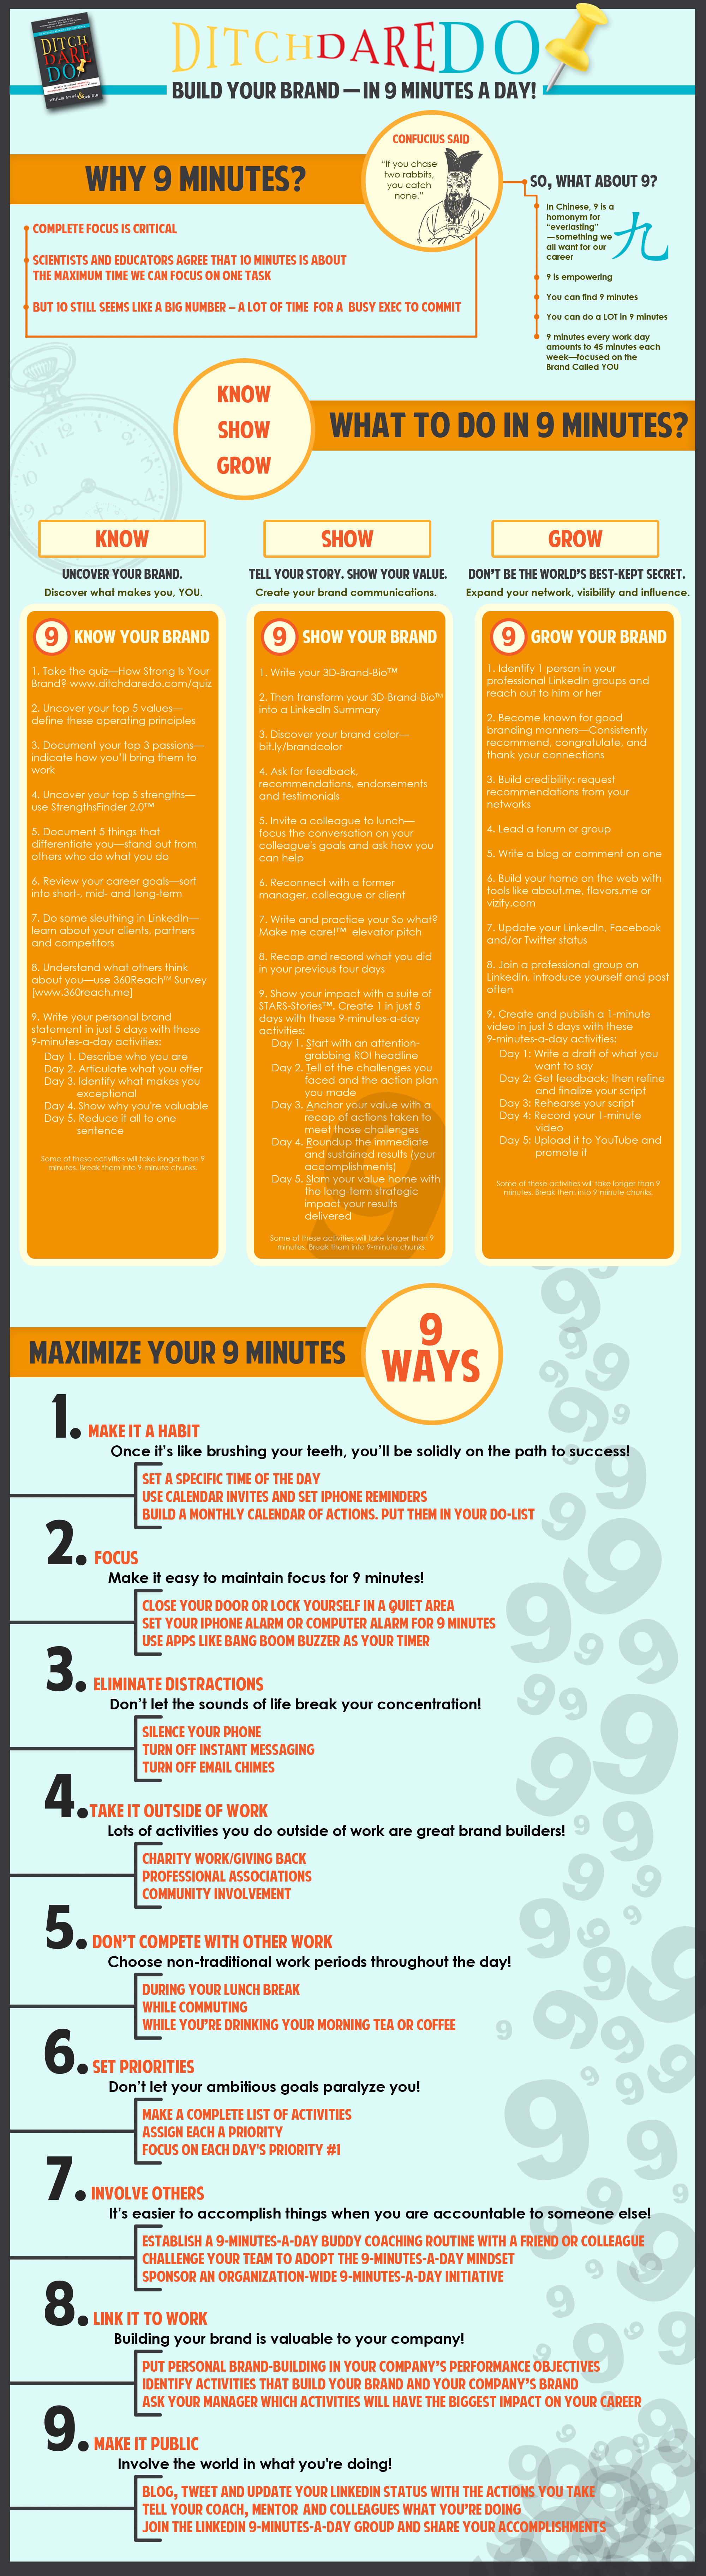 Personal Branding Guide - 9 Minutes a Day [INFOGRAPHIC] , how to build your personal brand